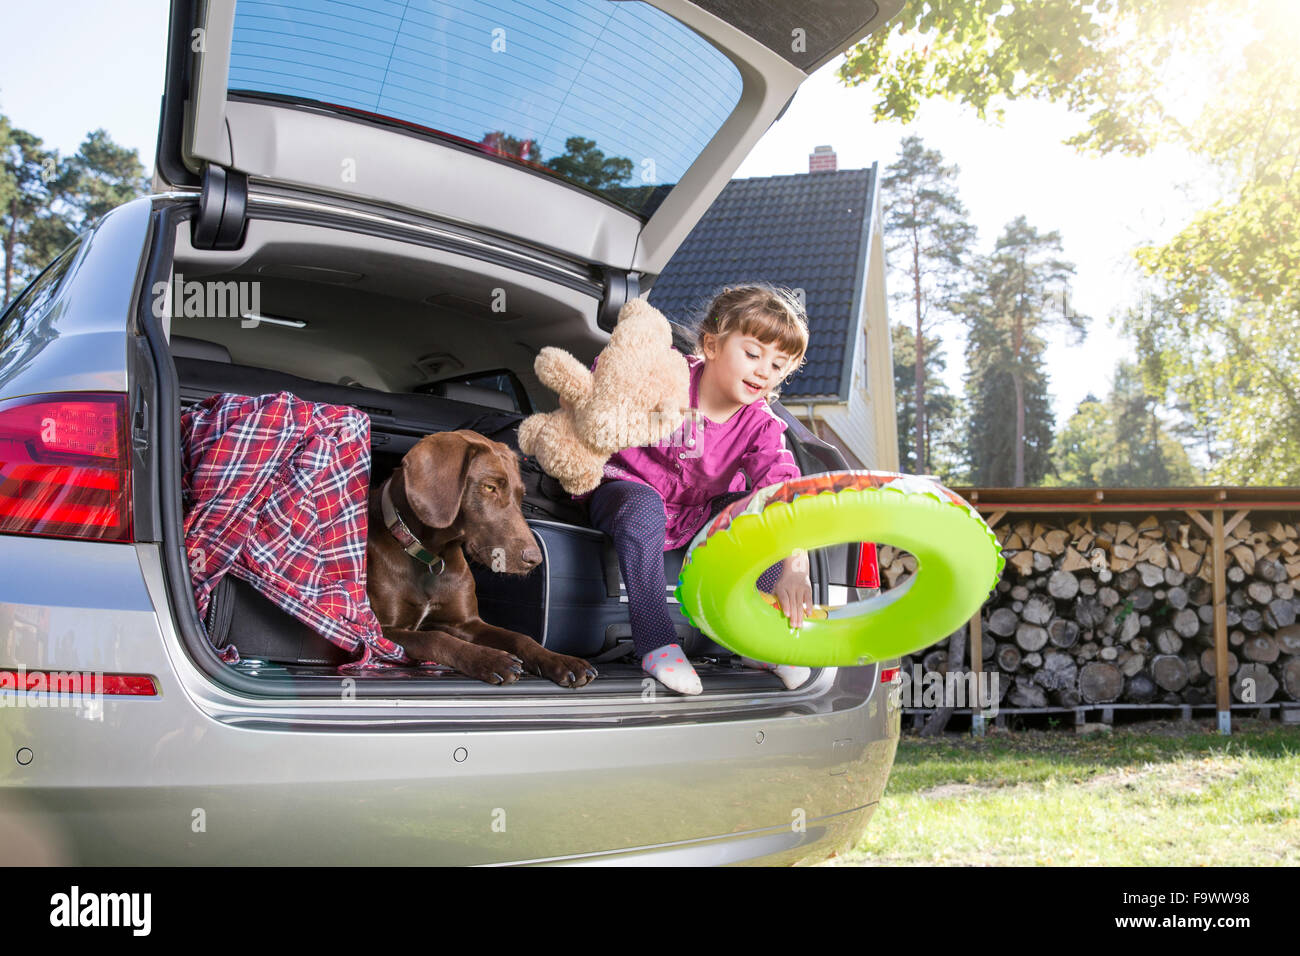 Girl in car boot with dog and teddy bear - Stock Image